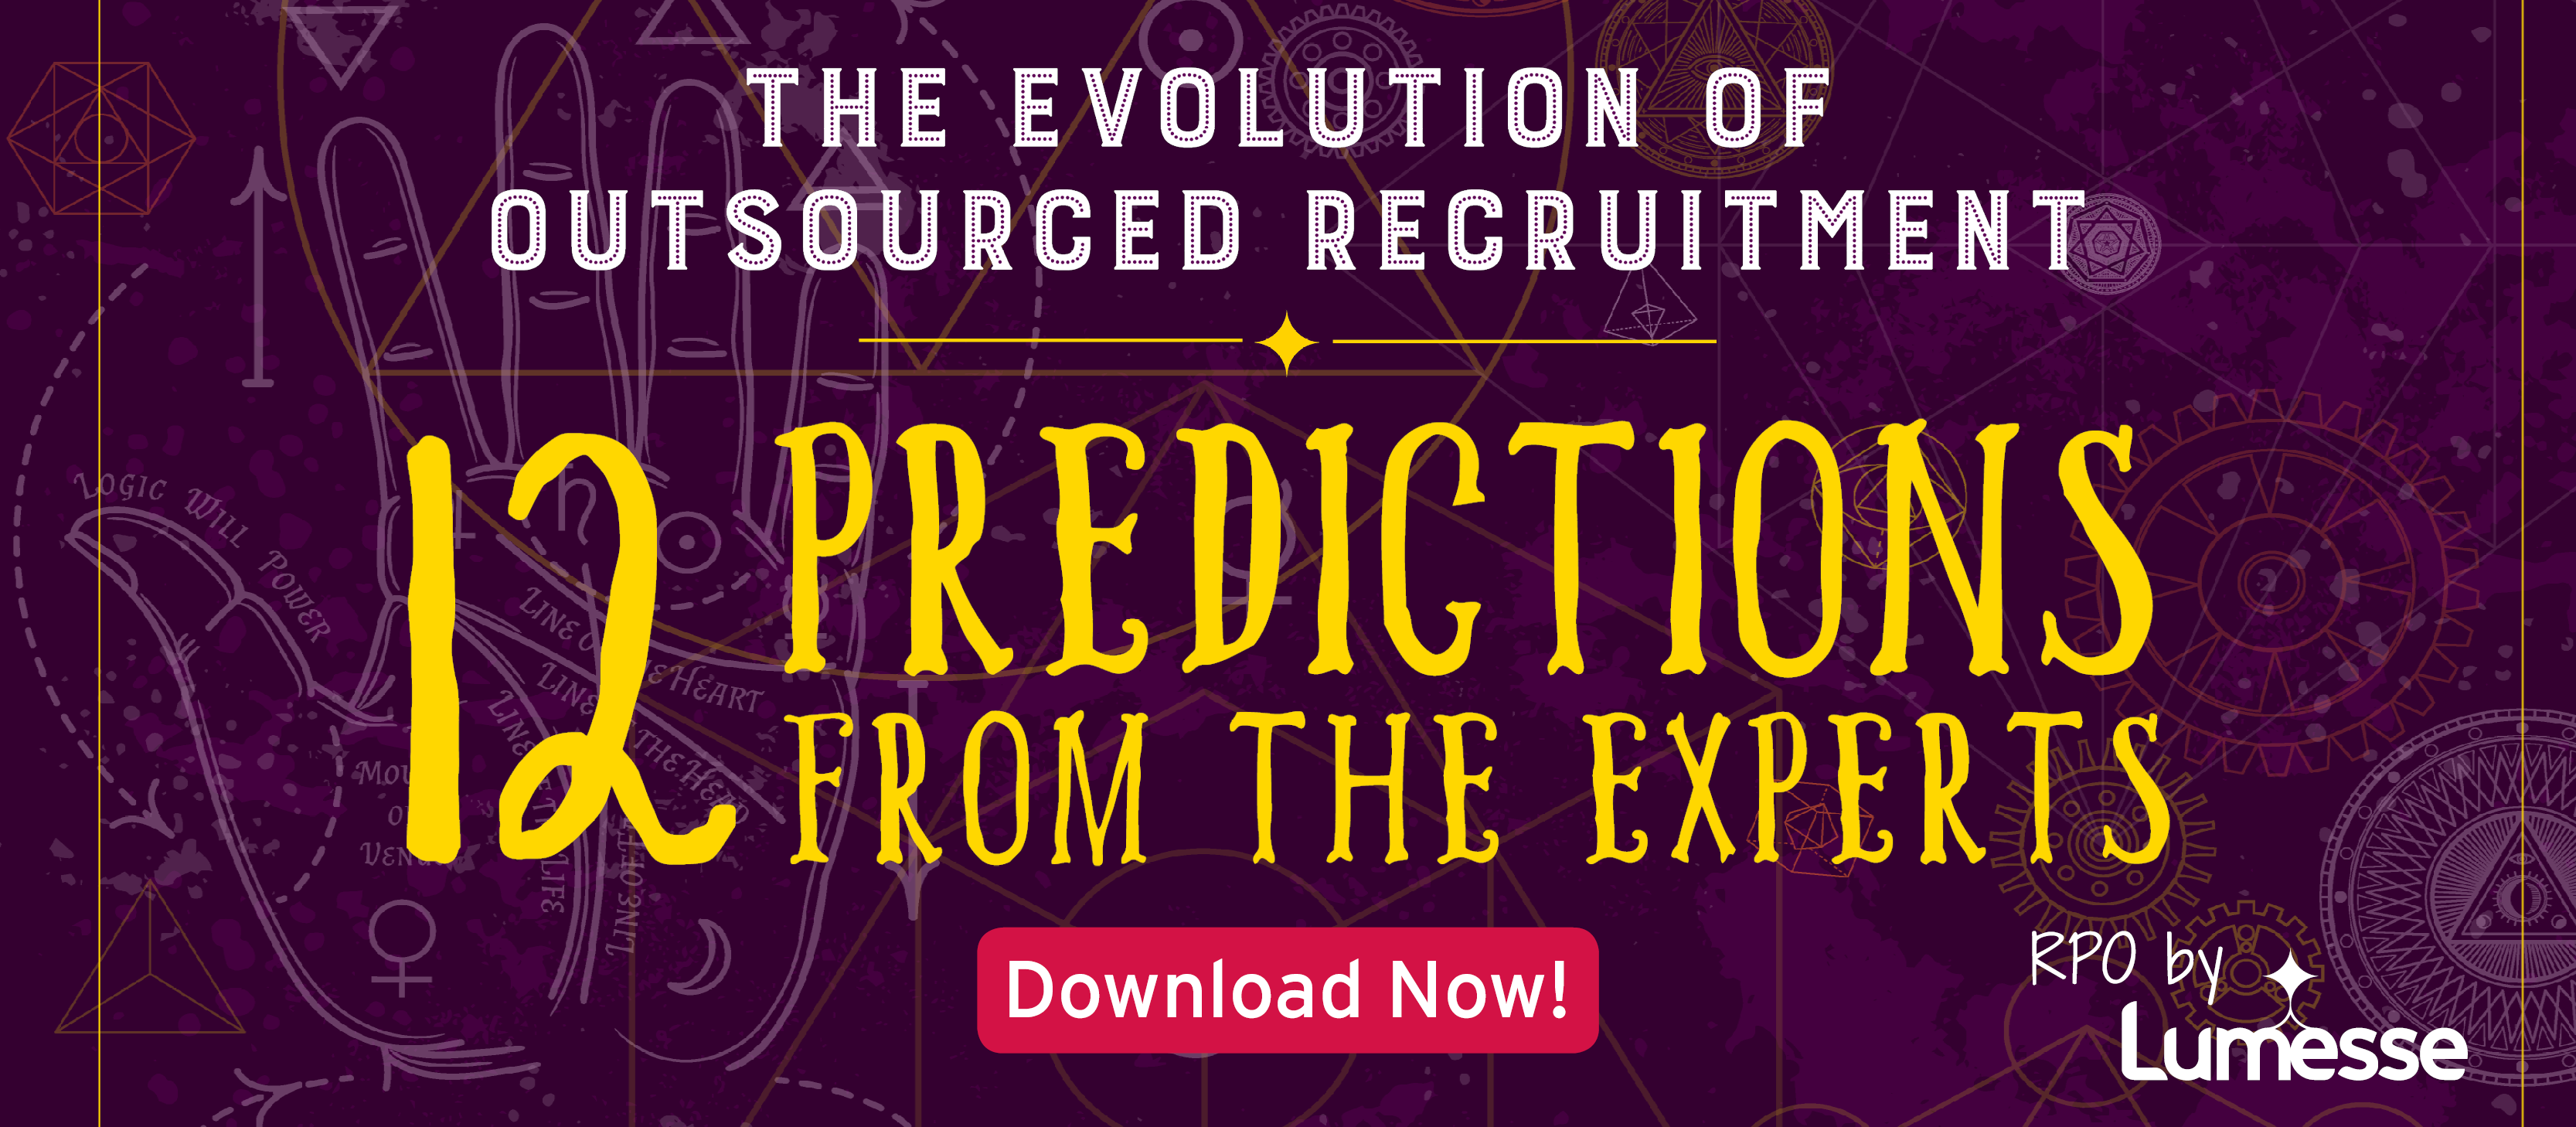 The evolution of outsourced recruitment: 12 predictions from the experts